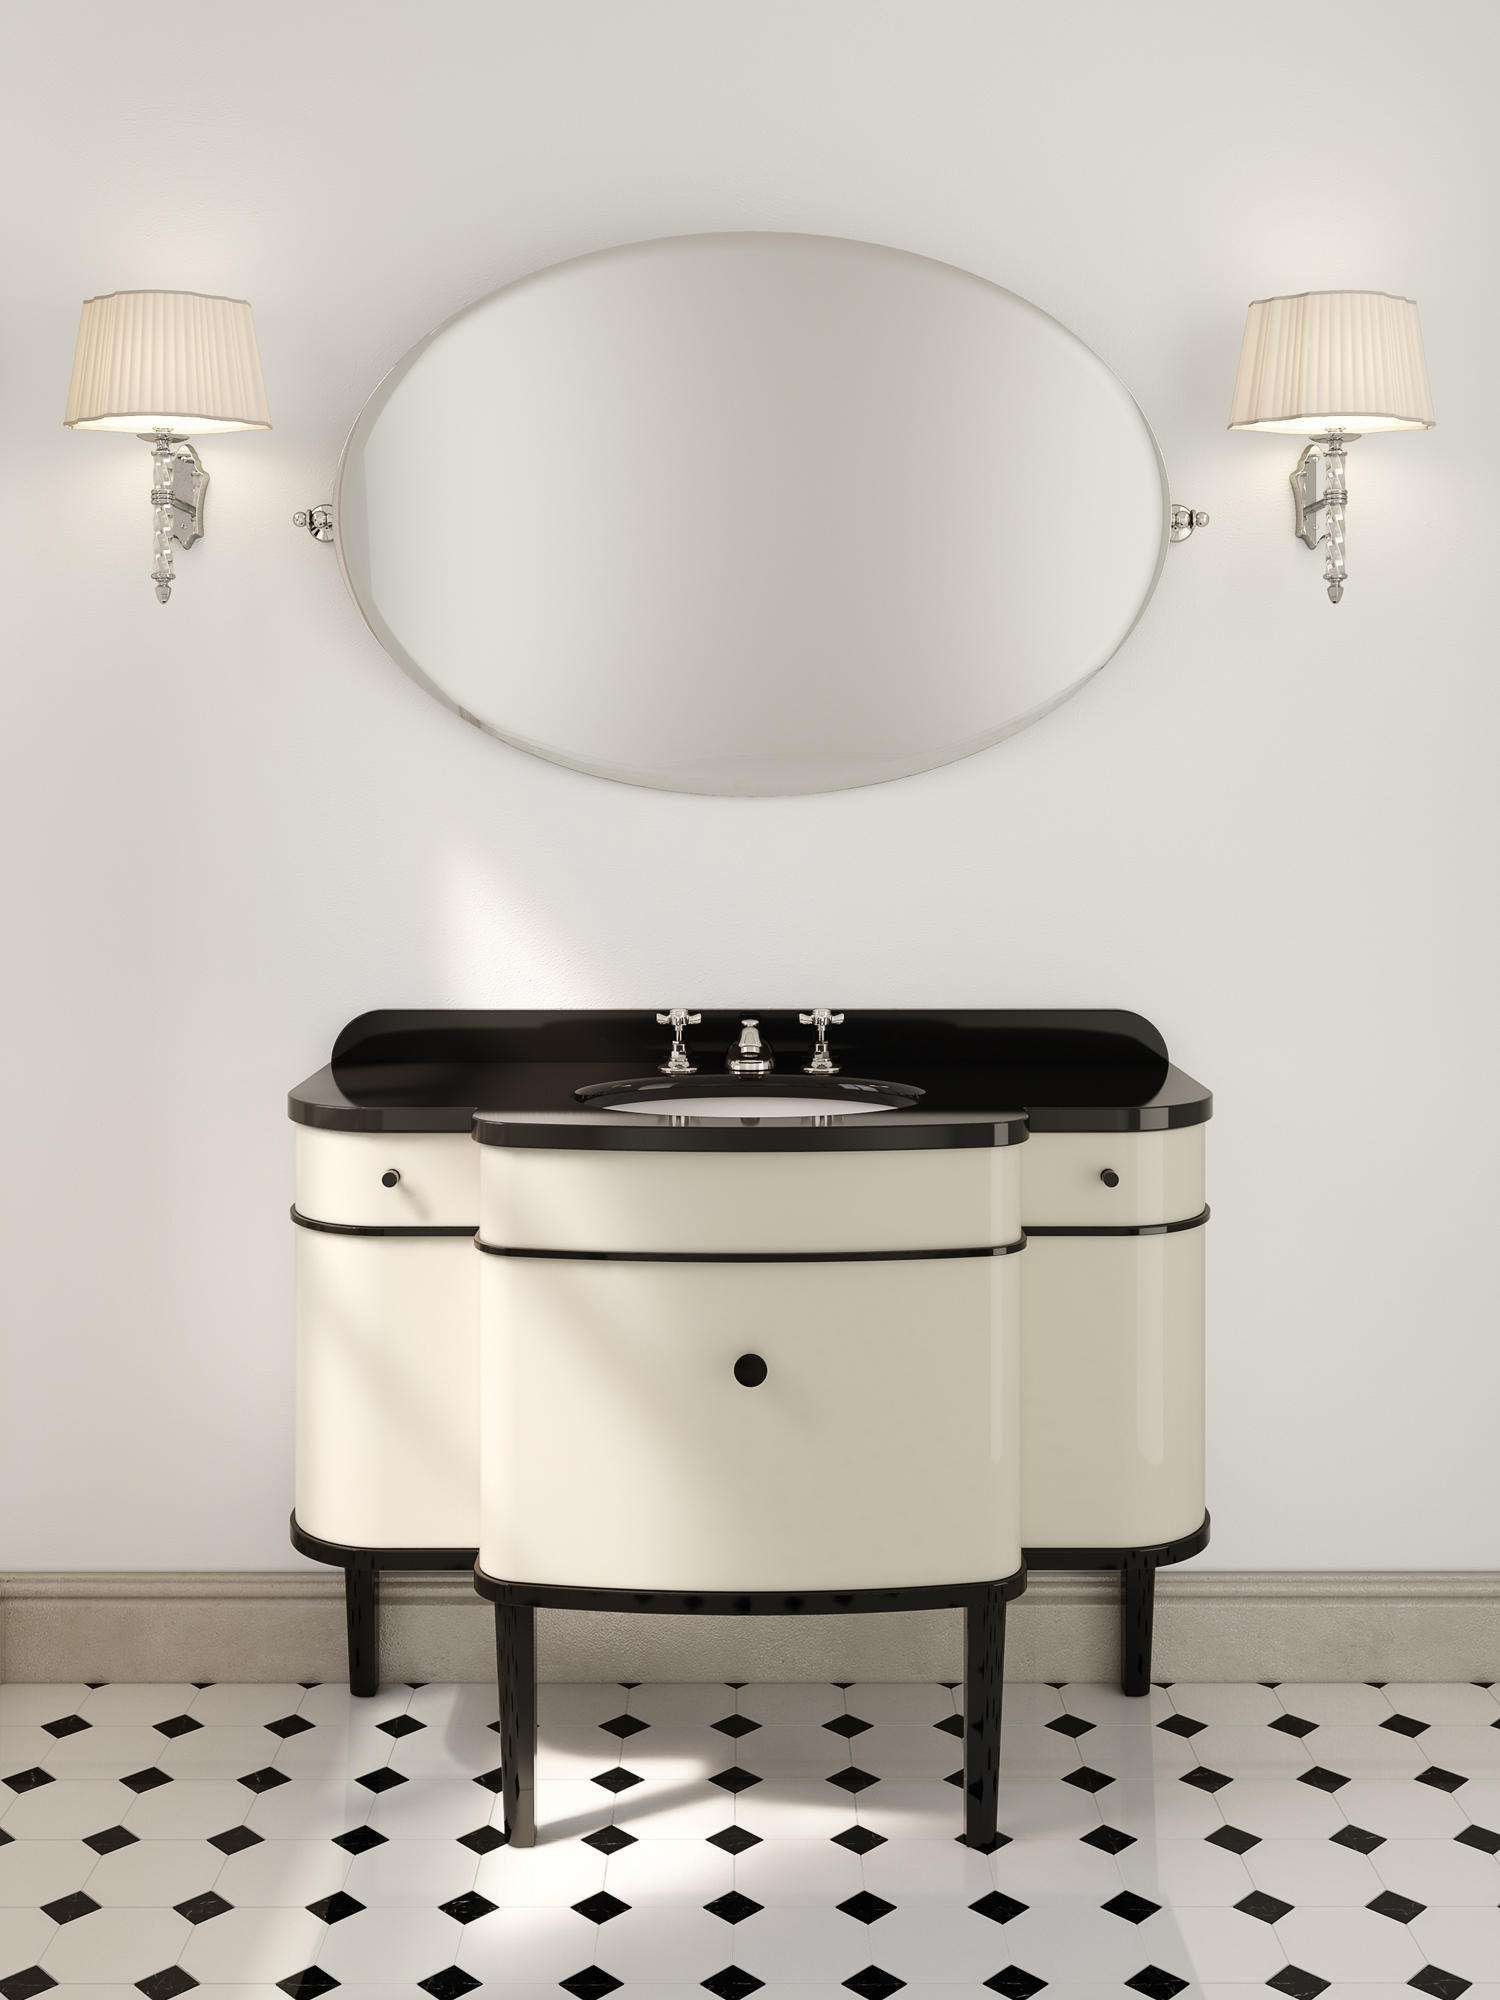 music vanity unit wash basins from devon devon architonic. Black Bedroom Furniture Sets. Home Design Ideas